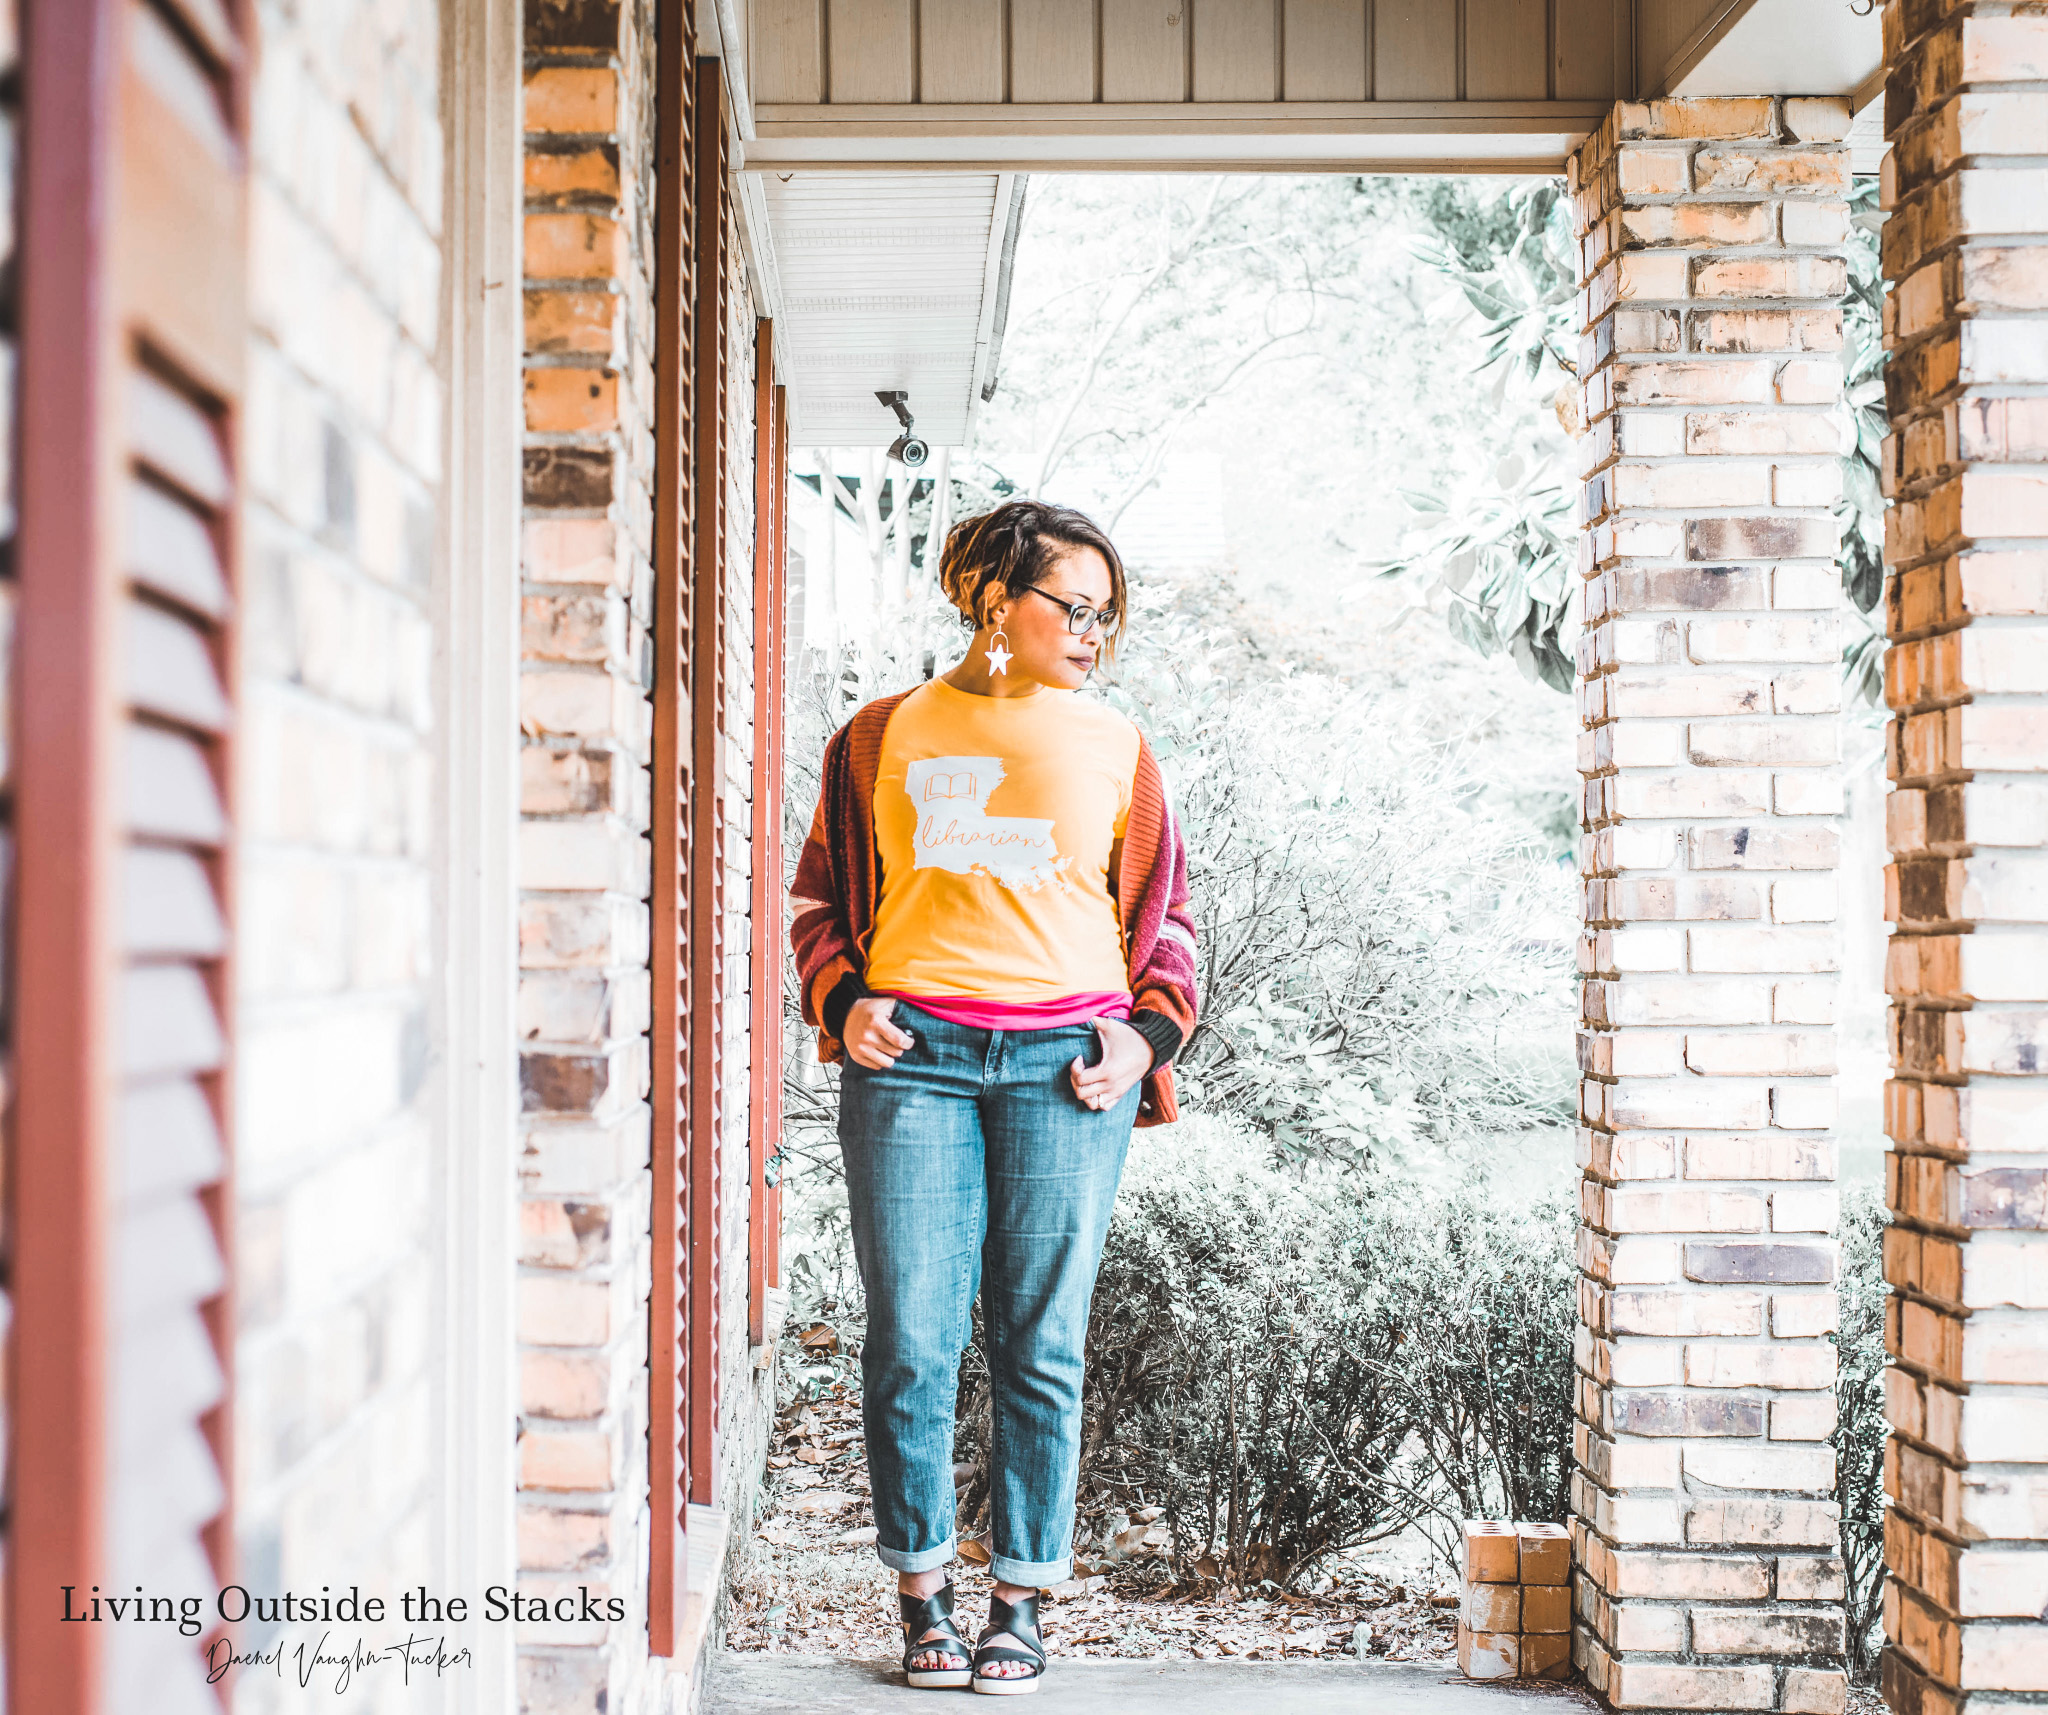 Daenel T {living outside the stacks} 2_30 #OnMyFrontPorch